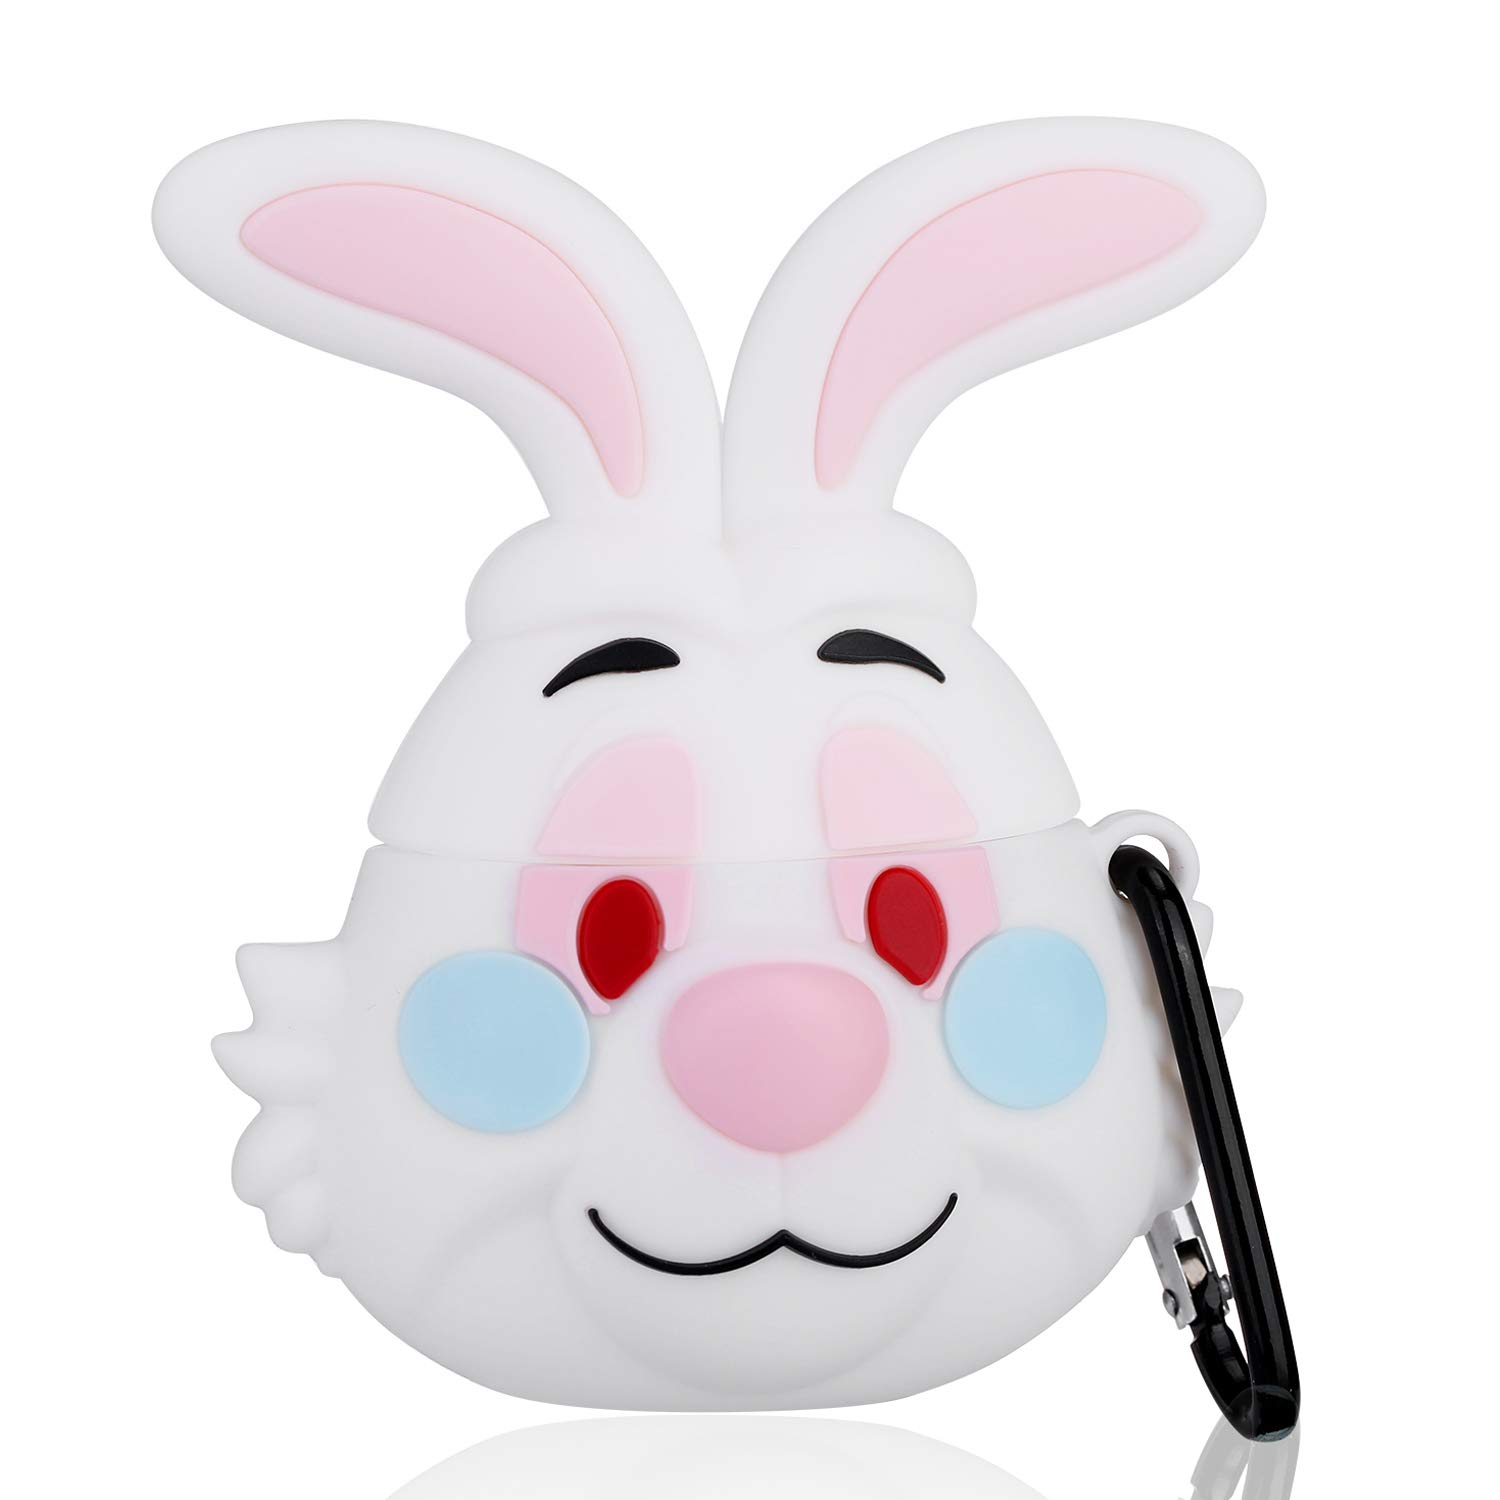 Gift-Hero White Ear Rabbit Cartoon Case for Airpods, Funny Cute Pattern Design for Girls Boys Kids, Accessories Carabiner Protective Fun Fashion Character Skin Soft Silicone Cover for Air pods 2/1